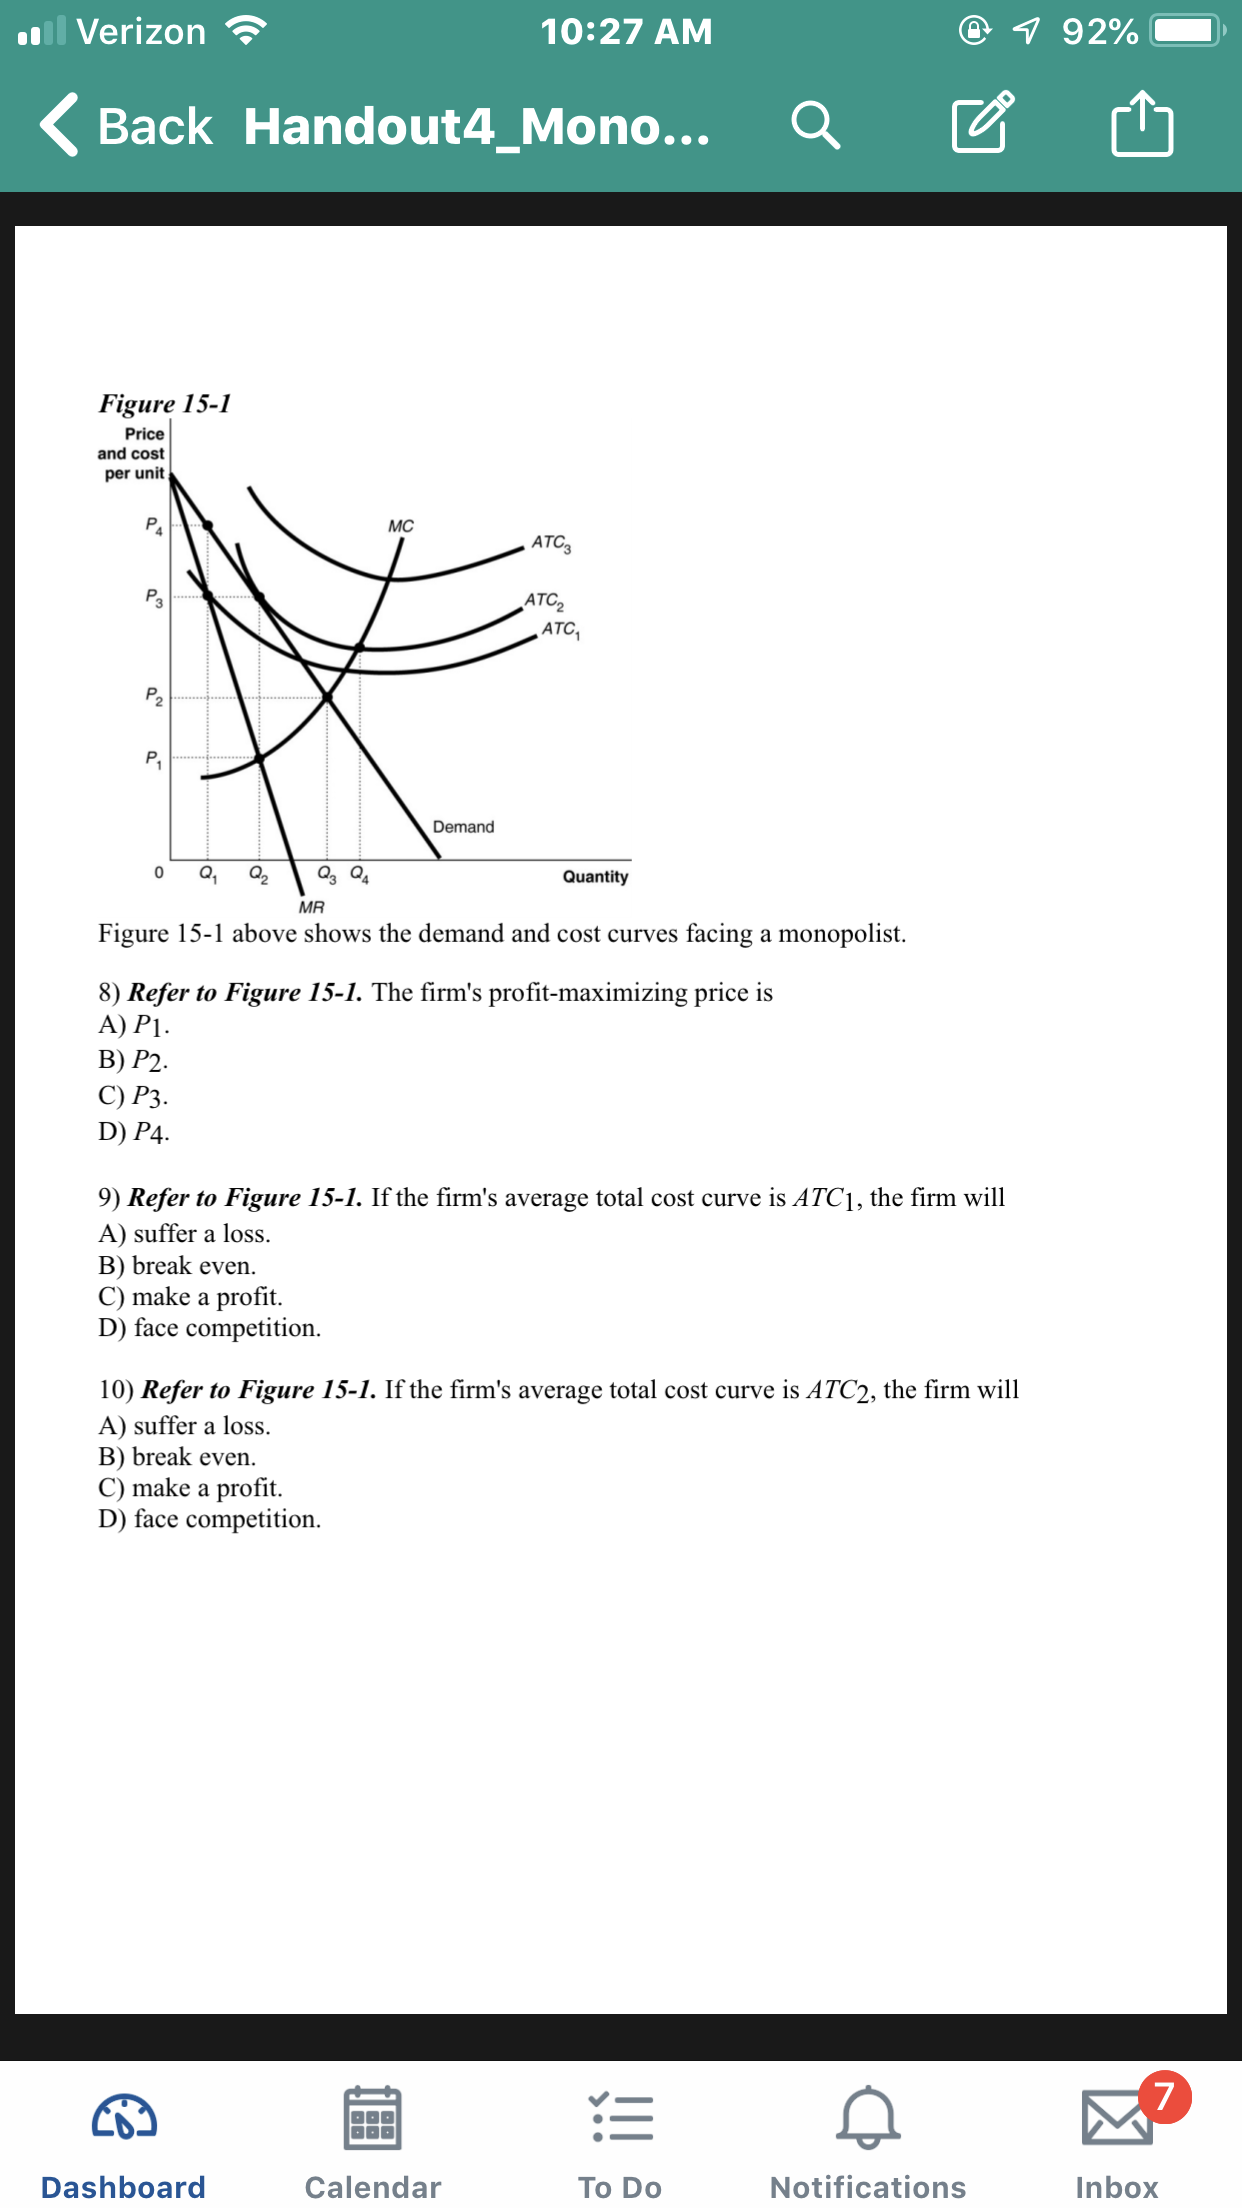 il Verizon 7 92% 10:27 AM Back Handout4_Mono... Figure 15-1 Price and cost per unit МC ATC3 Pa АTC, ATC P P. Demand Q2 Q4 0 Quantity MR facing a monopolist Figure 15-1 above shows the demand and cost curves 8) Refer to Figure 15-1. The firm's profit-maximizing price is А) P1. В) P2. С) Р3. D) P4 is ATC1, the firm will 9) Refer to Figure 15-1. If the firm's average total cost curve A) suffer a loss B) break even. C) make a profit D) face competition 10) Refer to Figure 15-1. If the firm's average total cost curve is ATC2, the firm will A) suffer a loss. B) break even C) make a profit. D) face competition 7 Notifications Dashboard Calendar Inbox To Do